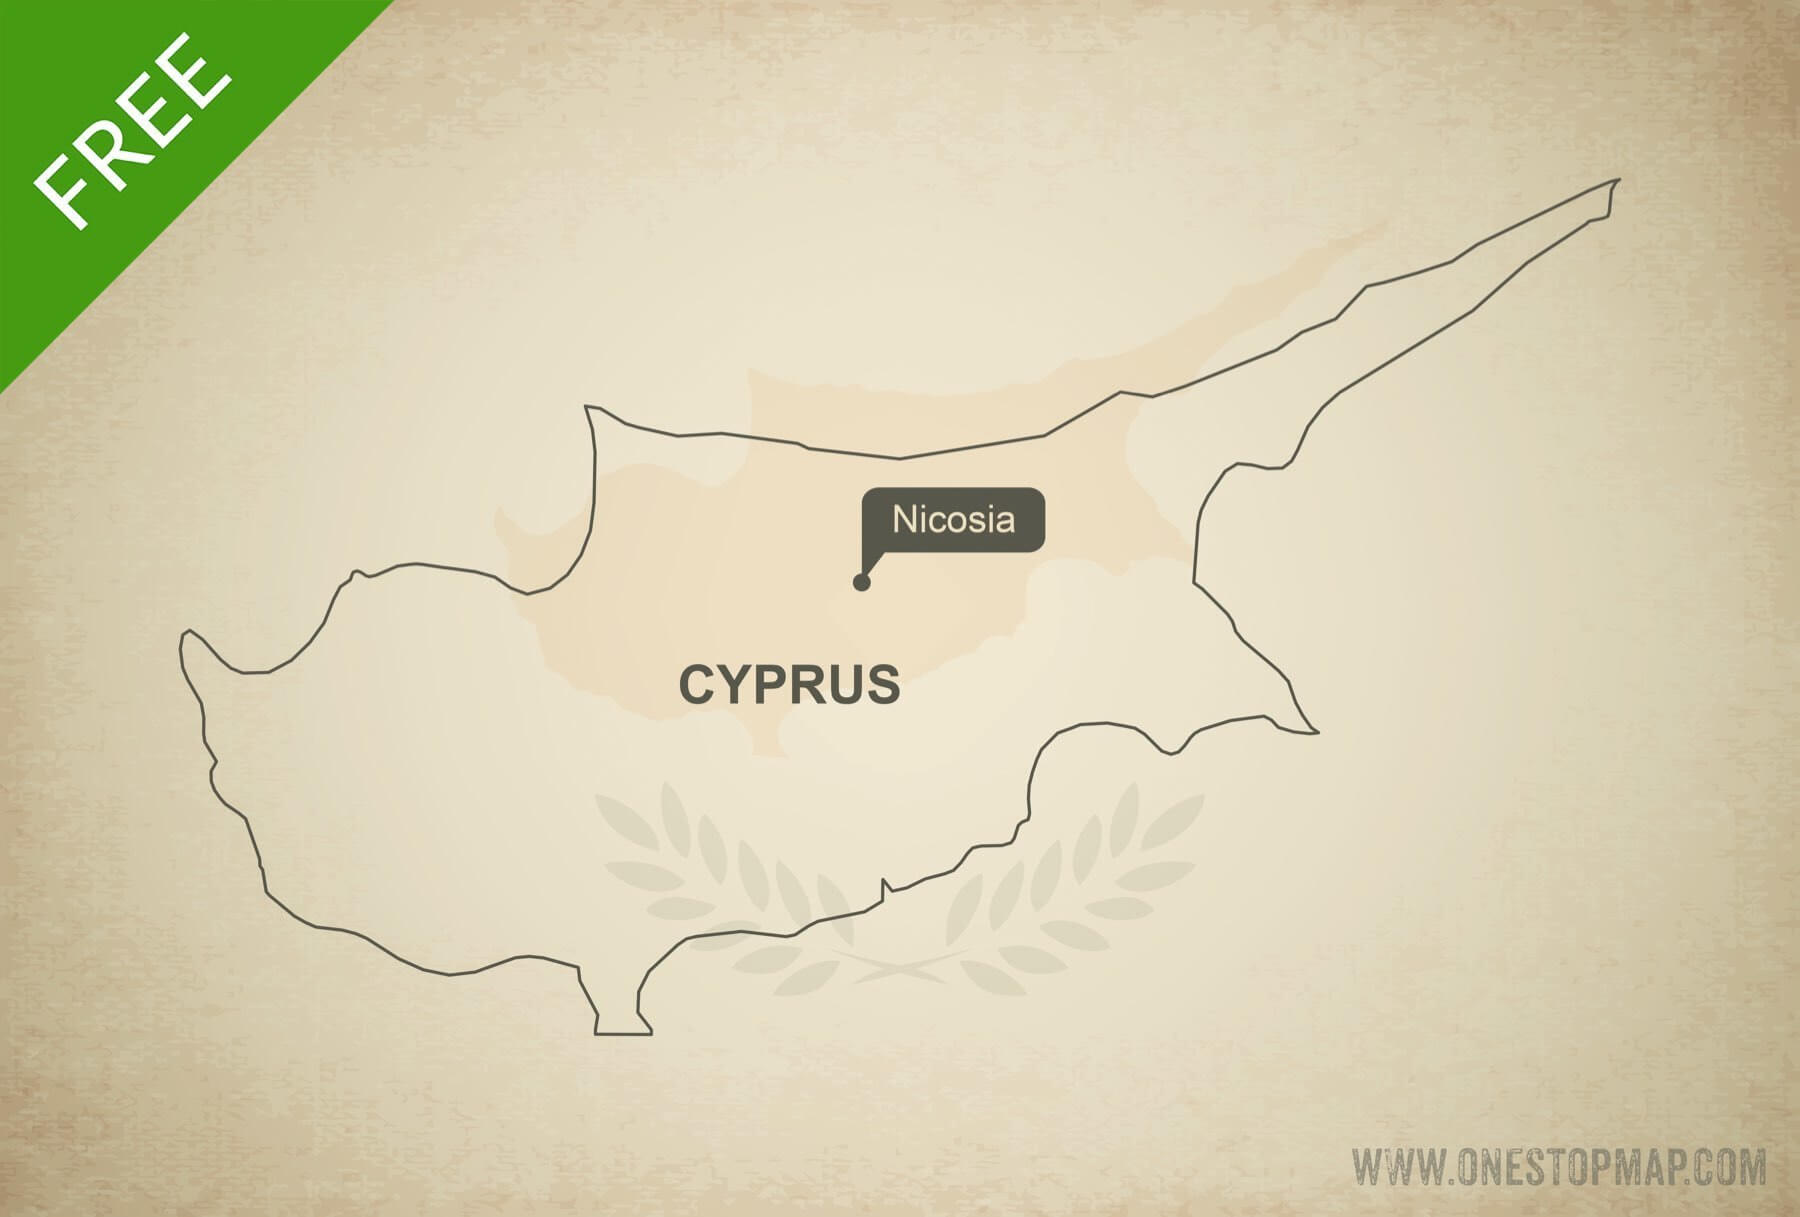 Free vector map of Cyprus outline Free